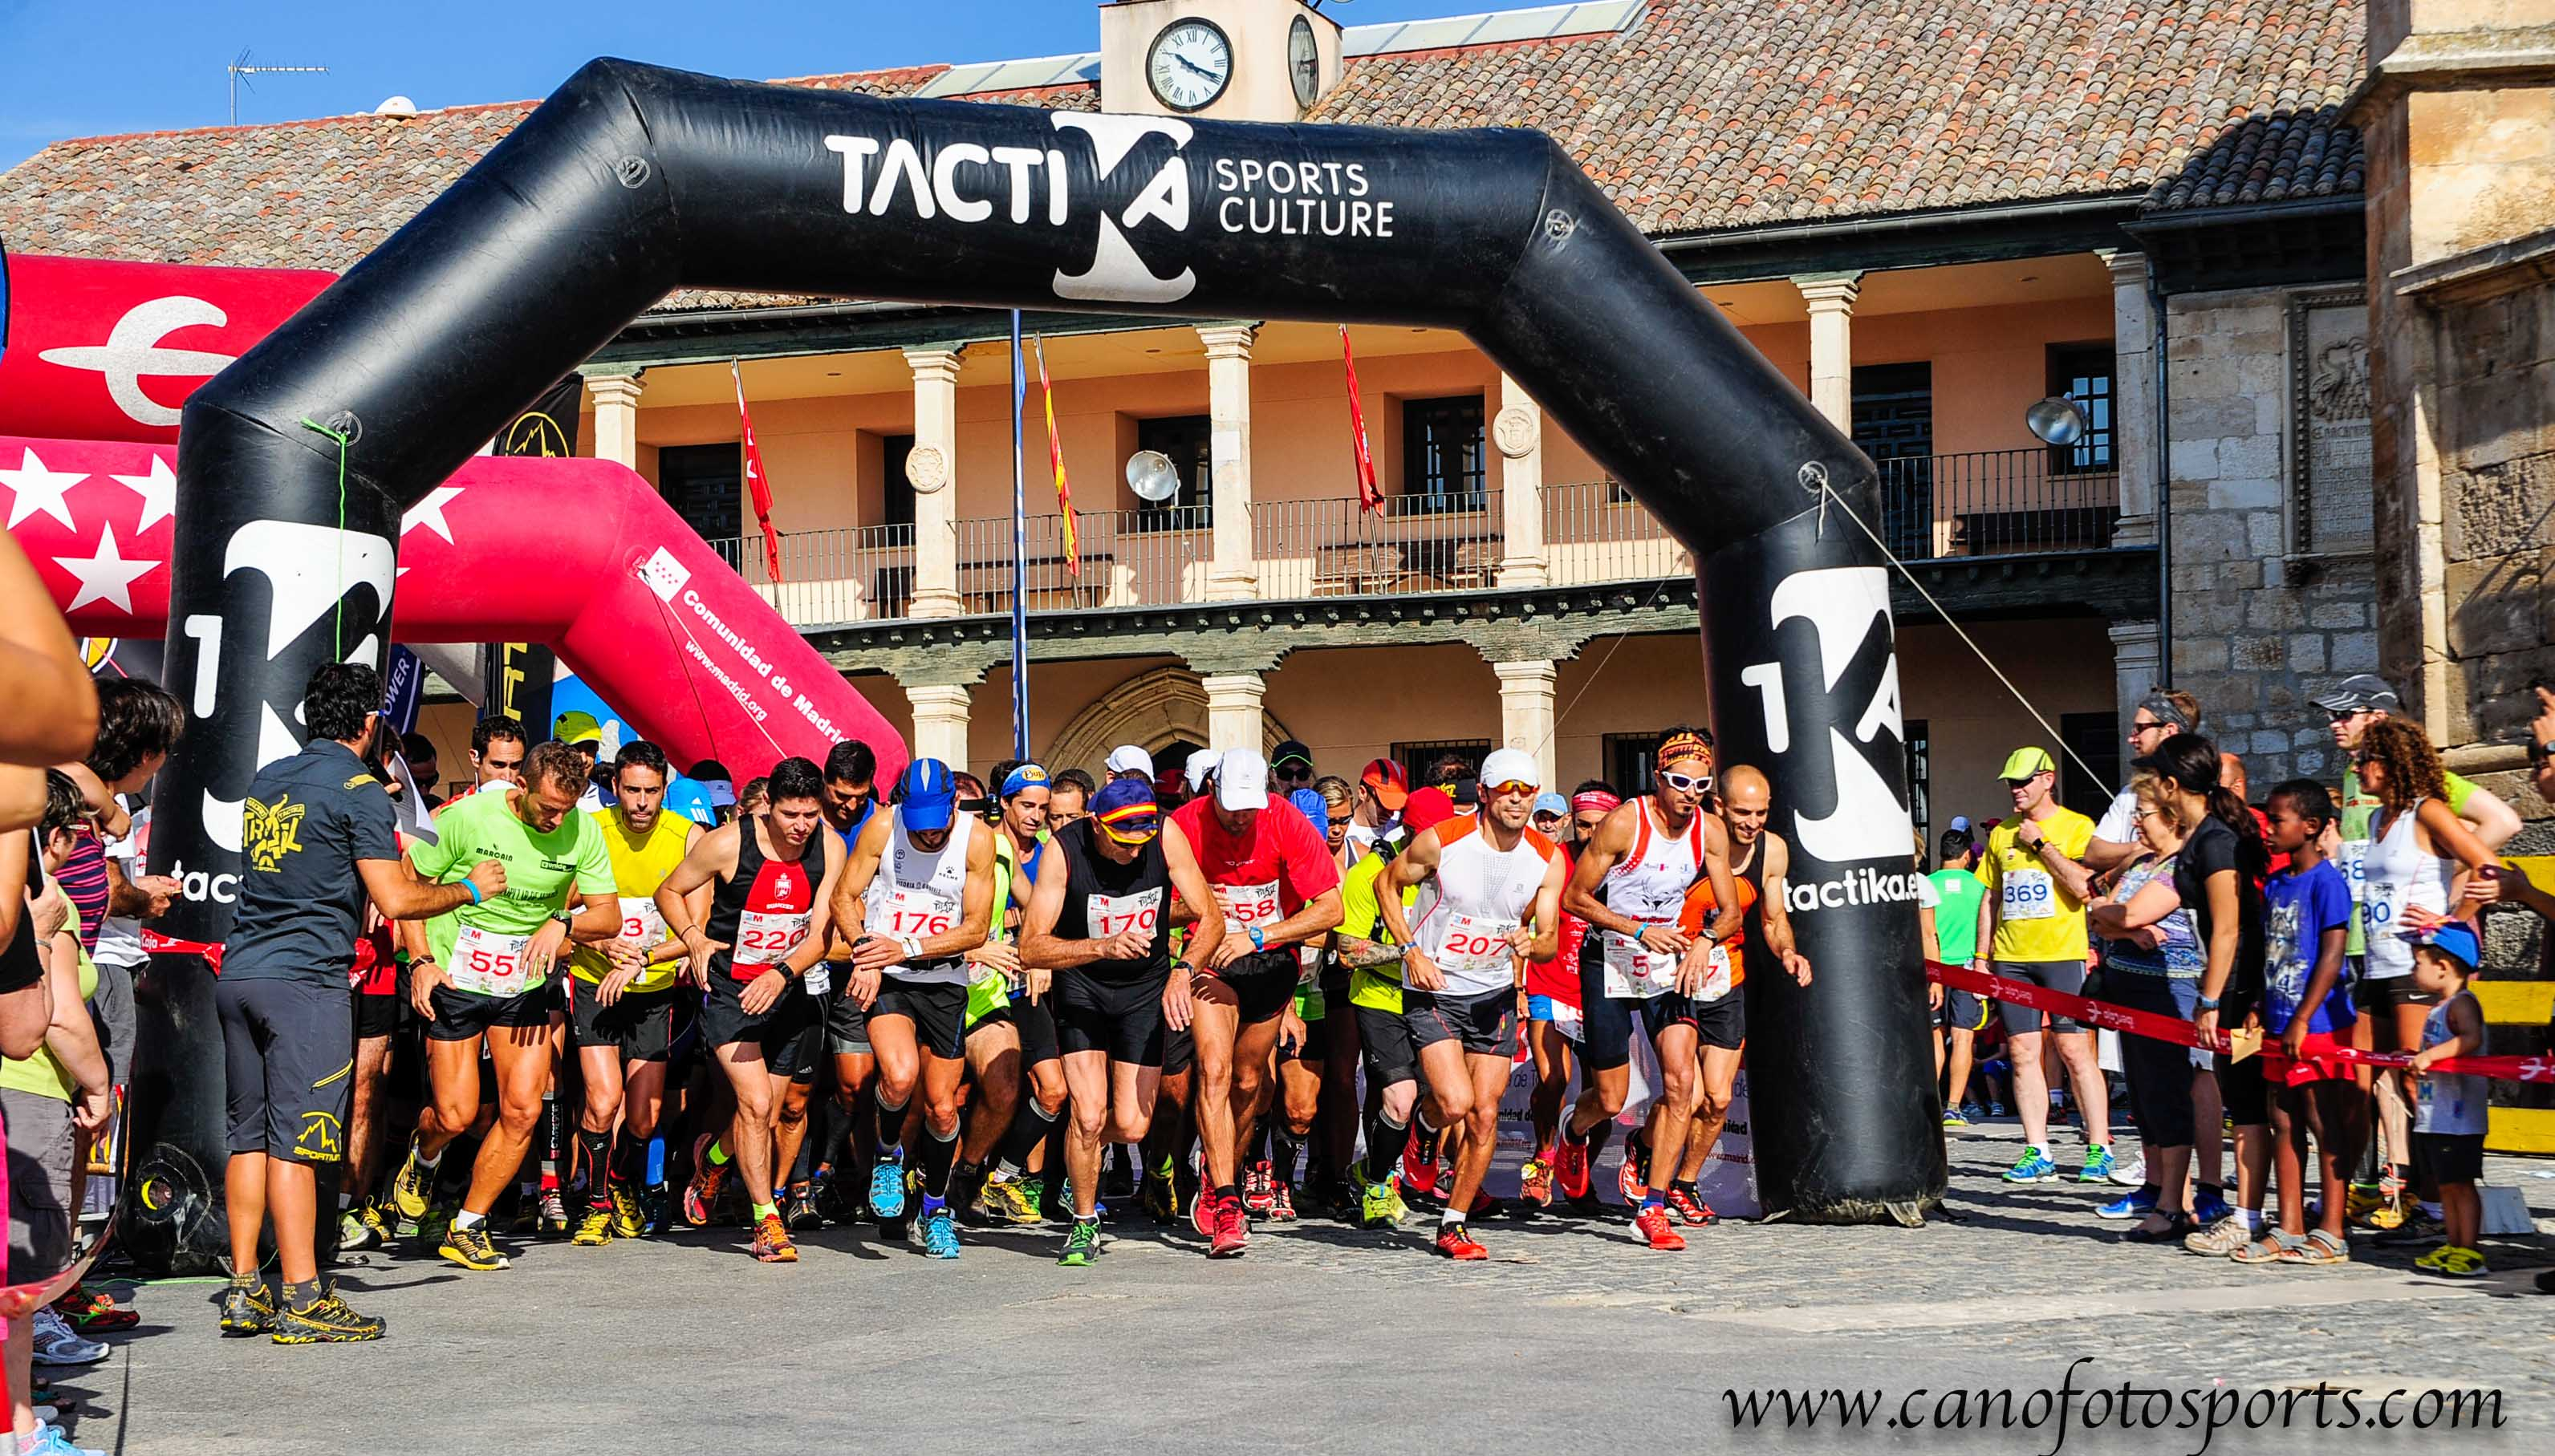 La Cabrera recibe el circuito Madrid Tacktika Trail